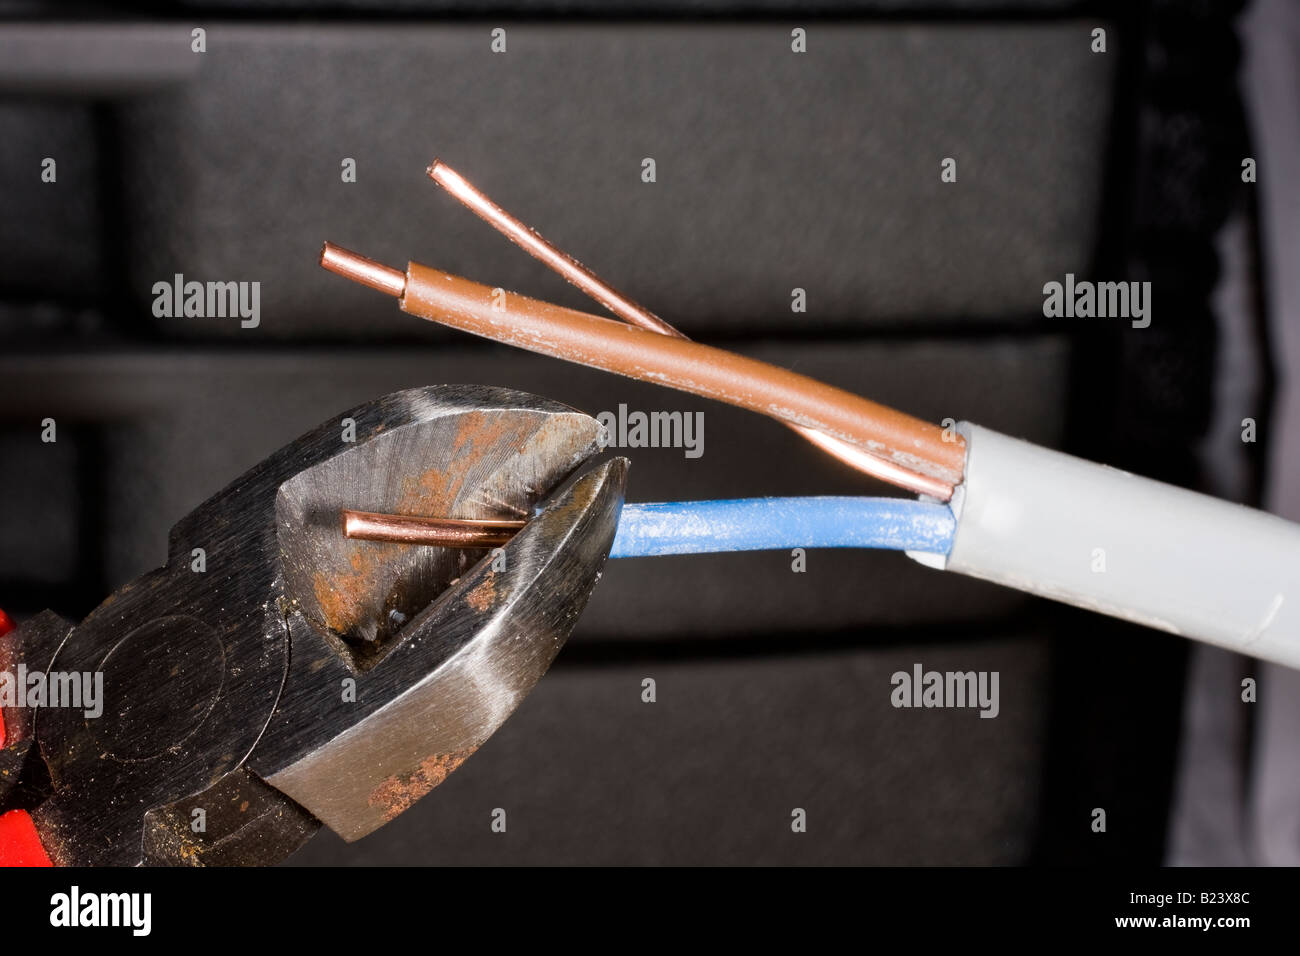 Cable Wires House Stock Photos & Cable Wires House Stock Images - Alamy